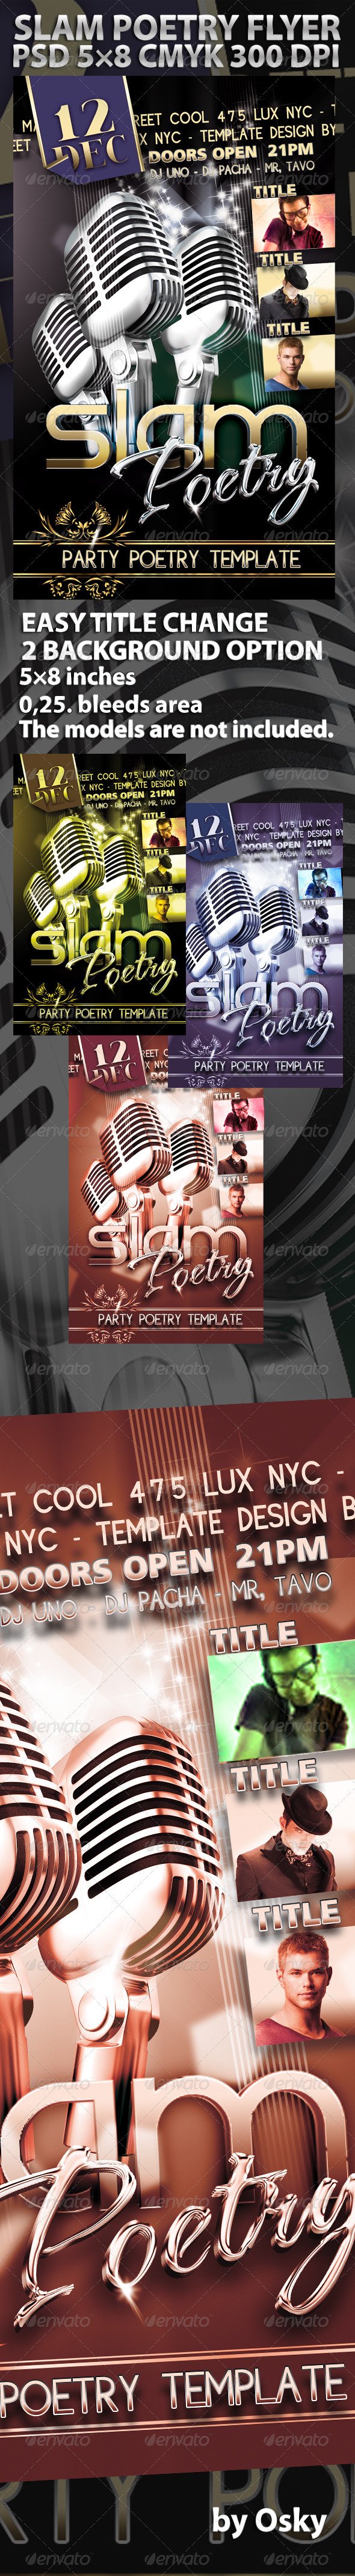 Slam Poetry Flyer - Clubs & Parties Events